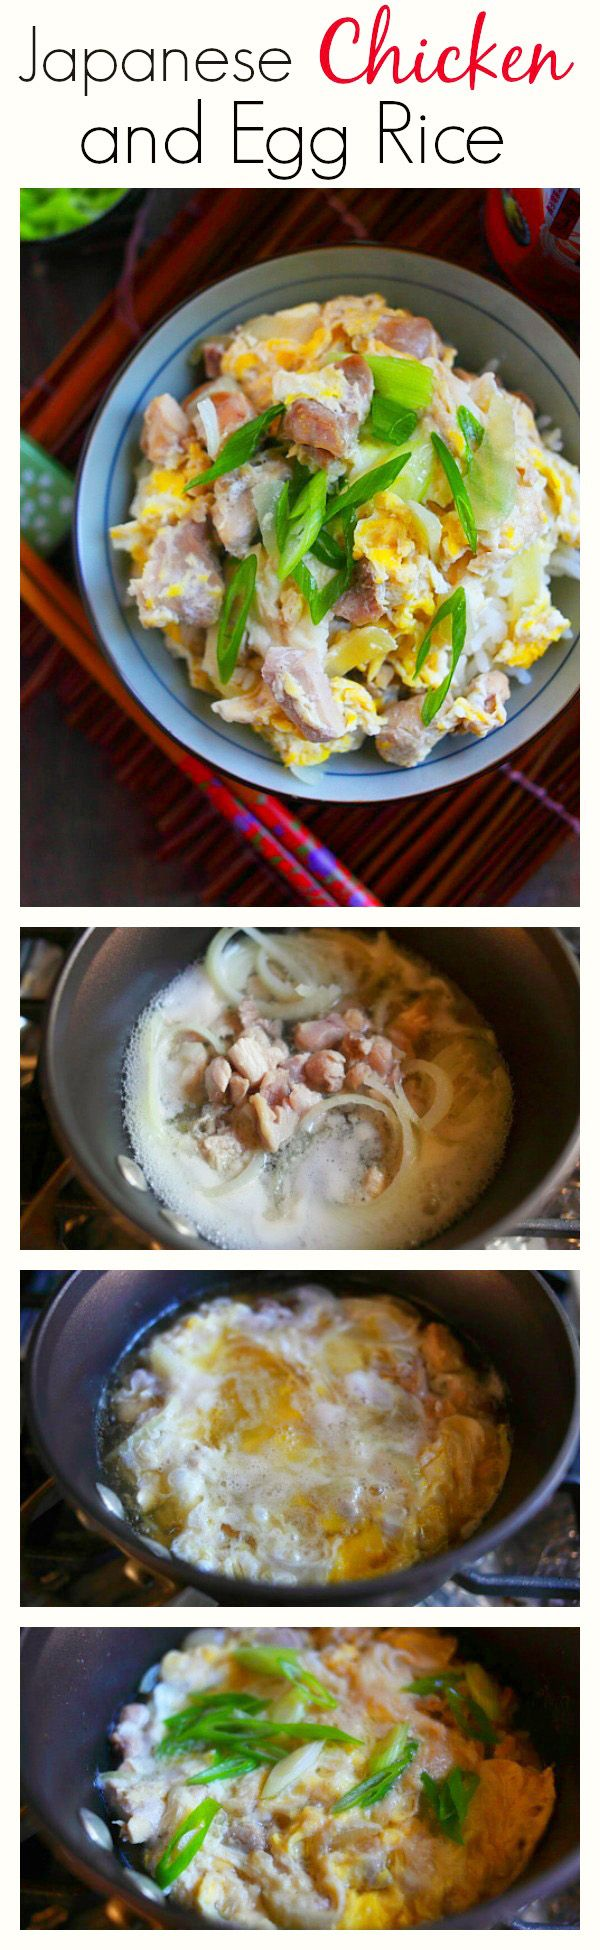 Oyakodon recipe japanese chicken and egg rice rasa malaysia one pot japanese chicken and eggs rice healthy delicious super easy and forumfinder Image collections